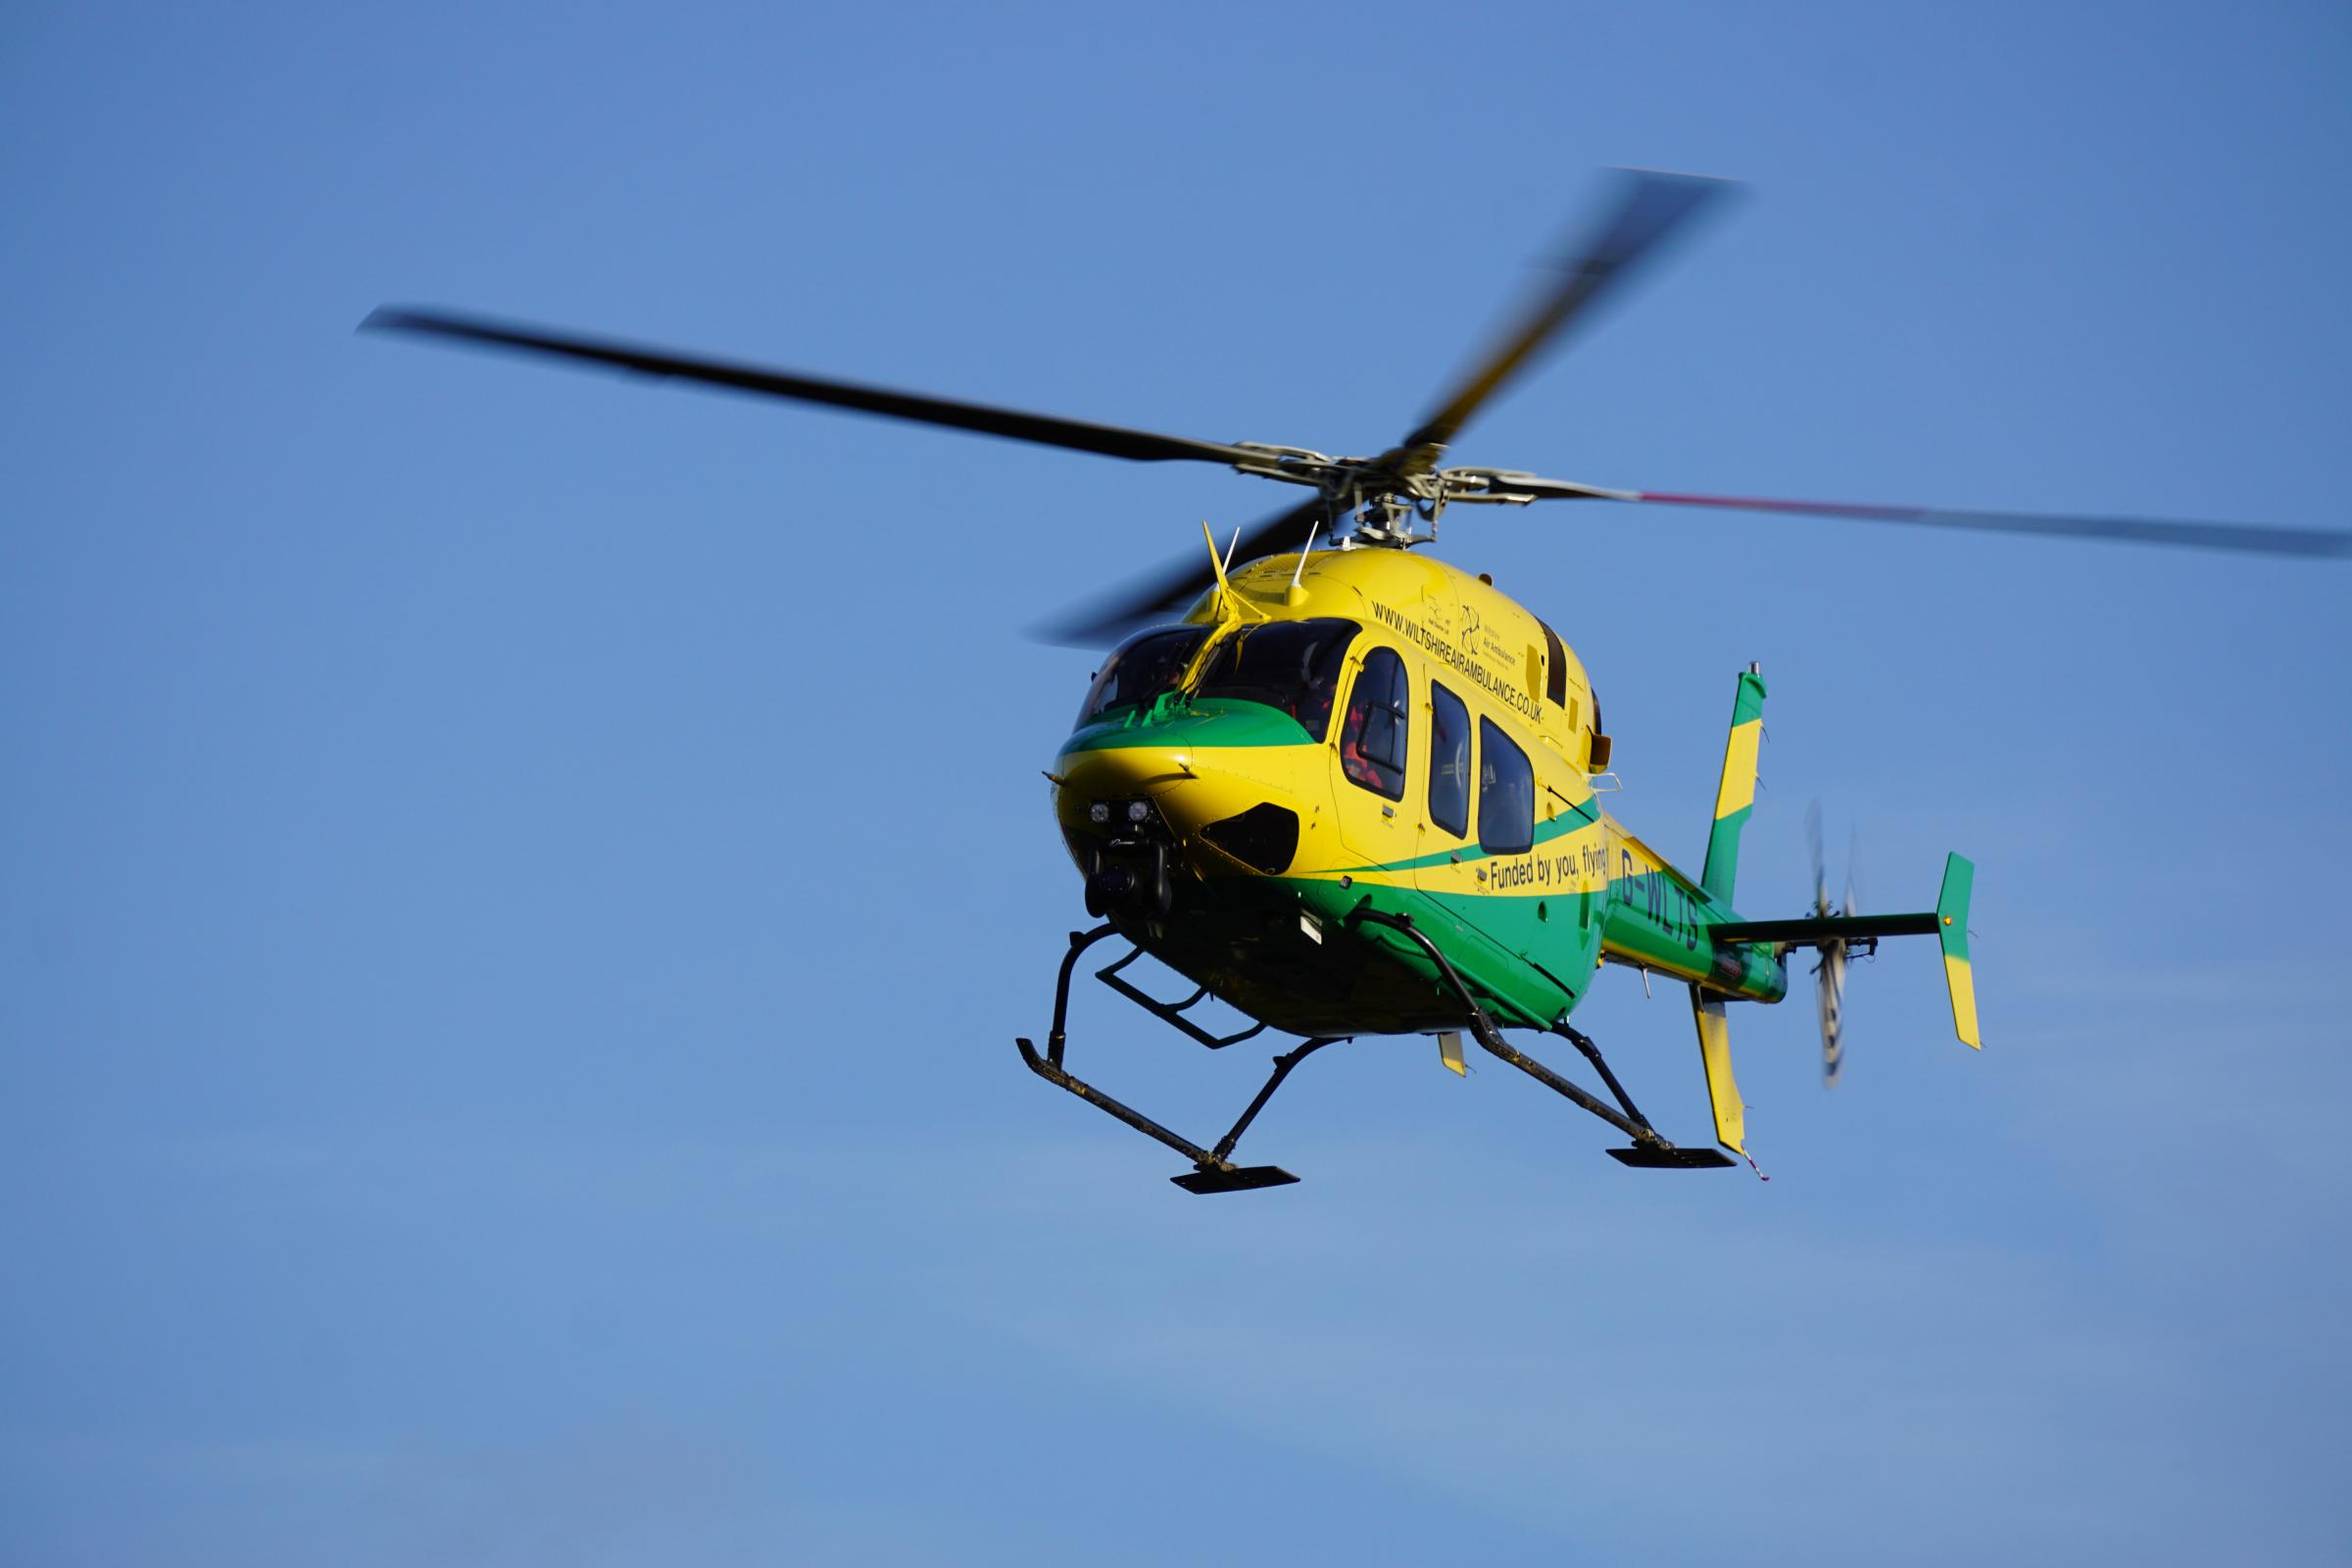 The Wiltshire Air Ambulance helicopter is flying again.